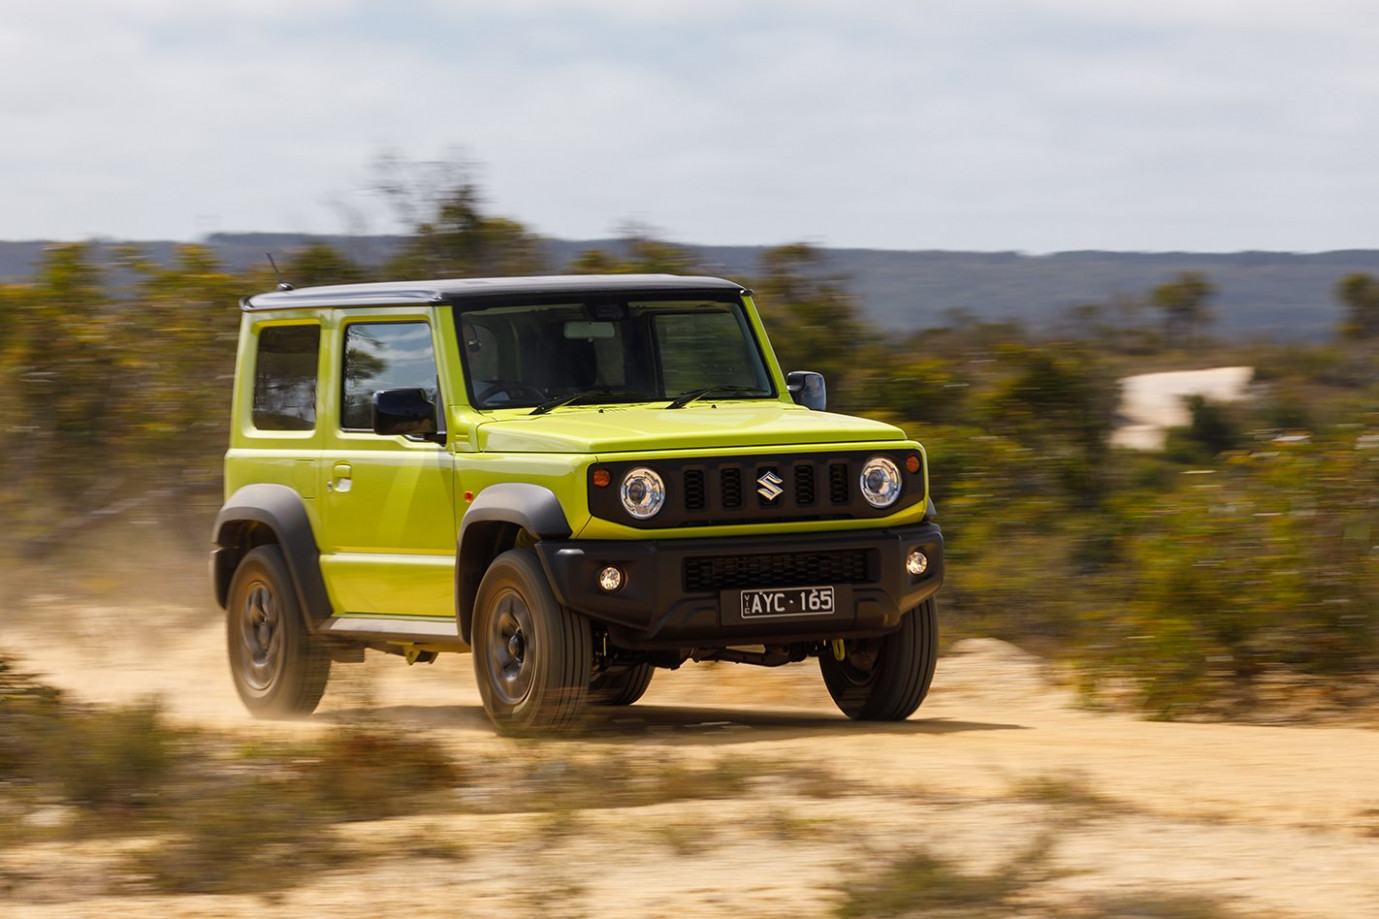 Suzuki Jimny 6 review, price and features